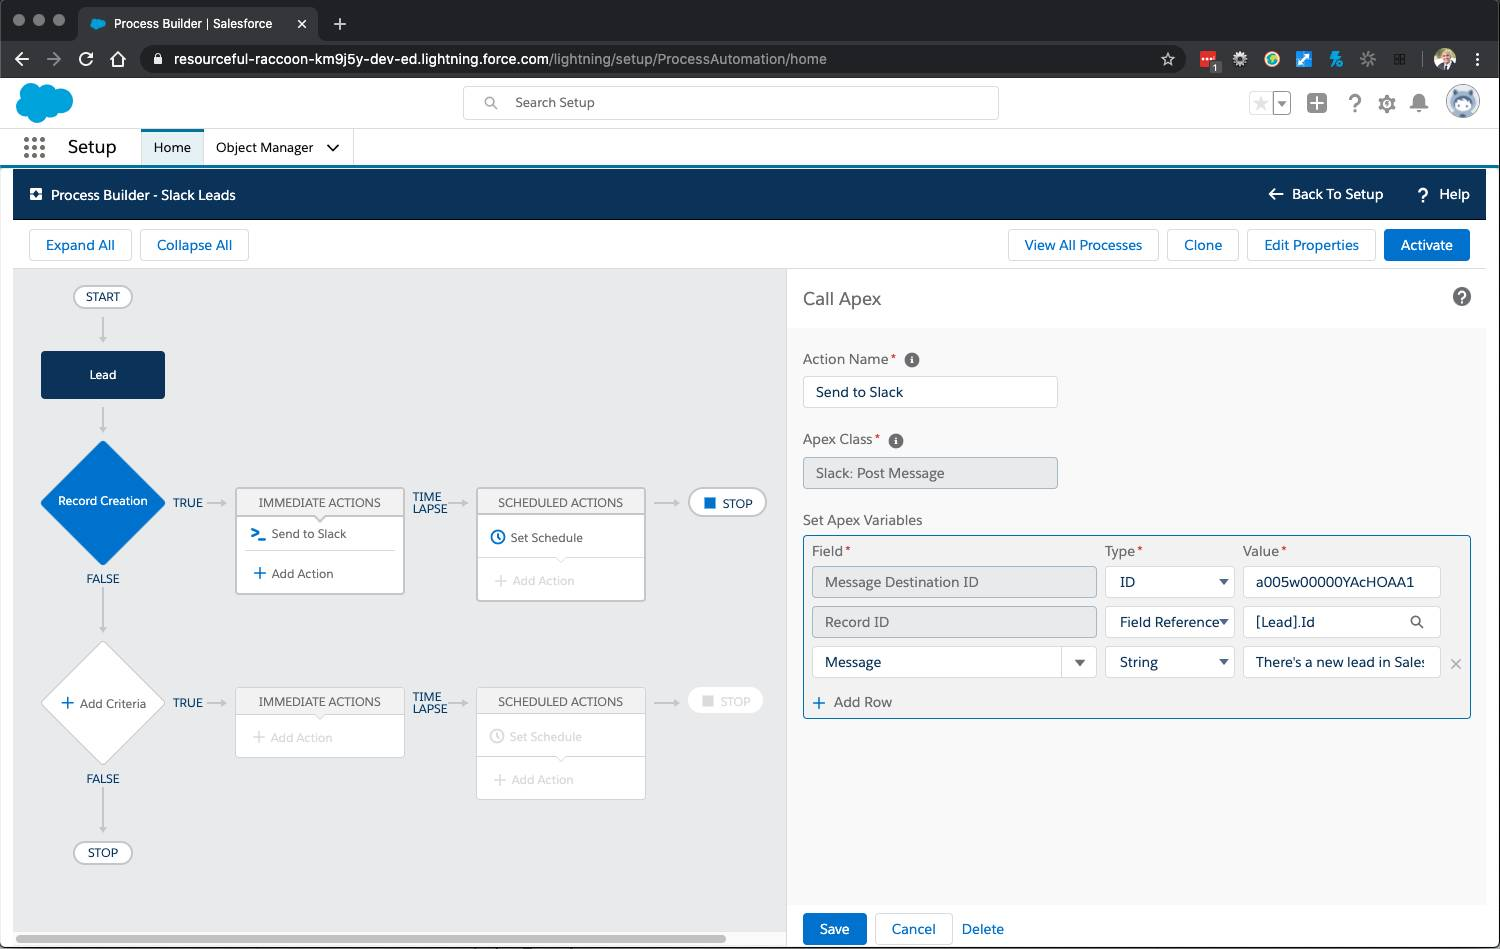 Process Builder with Call Apex action configuration open and Apex Variables populated